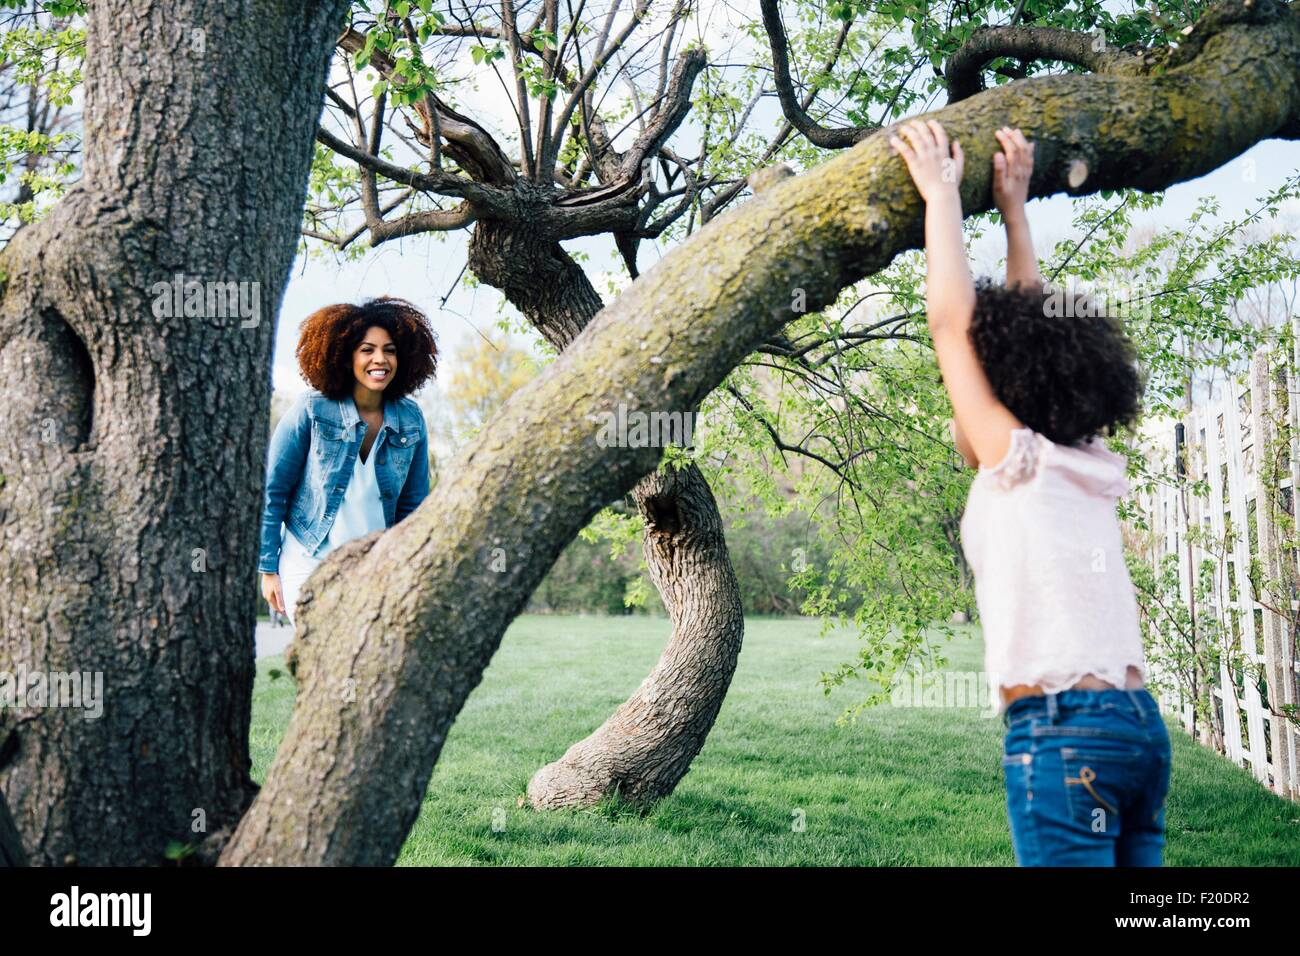 Mother smiling at daughter climbing tree - Stock Image